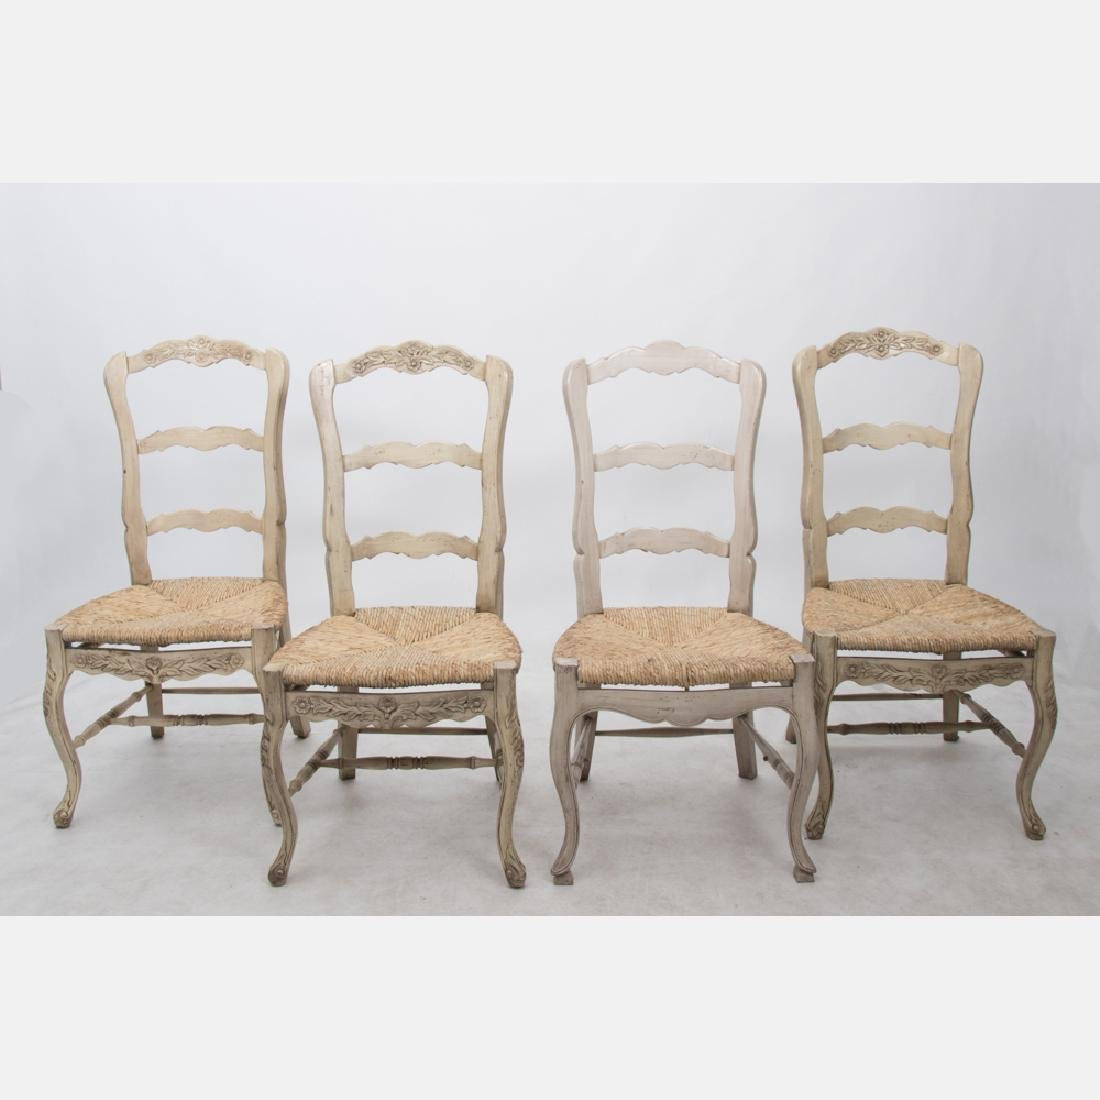 A Group of Four French Provincial Style Painted